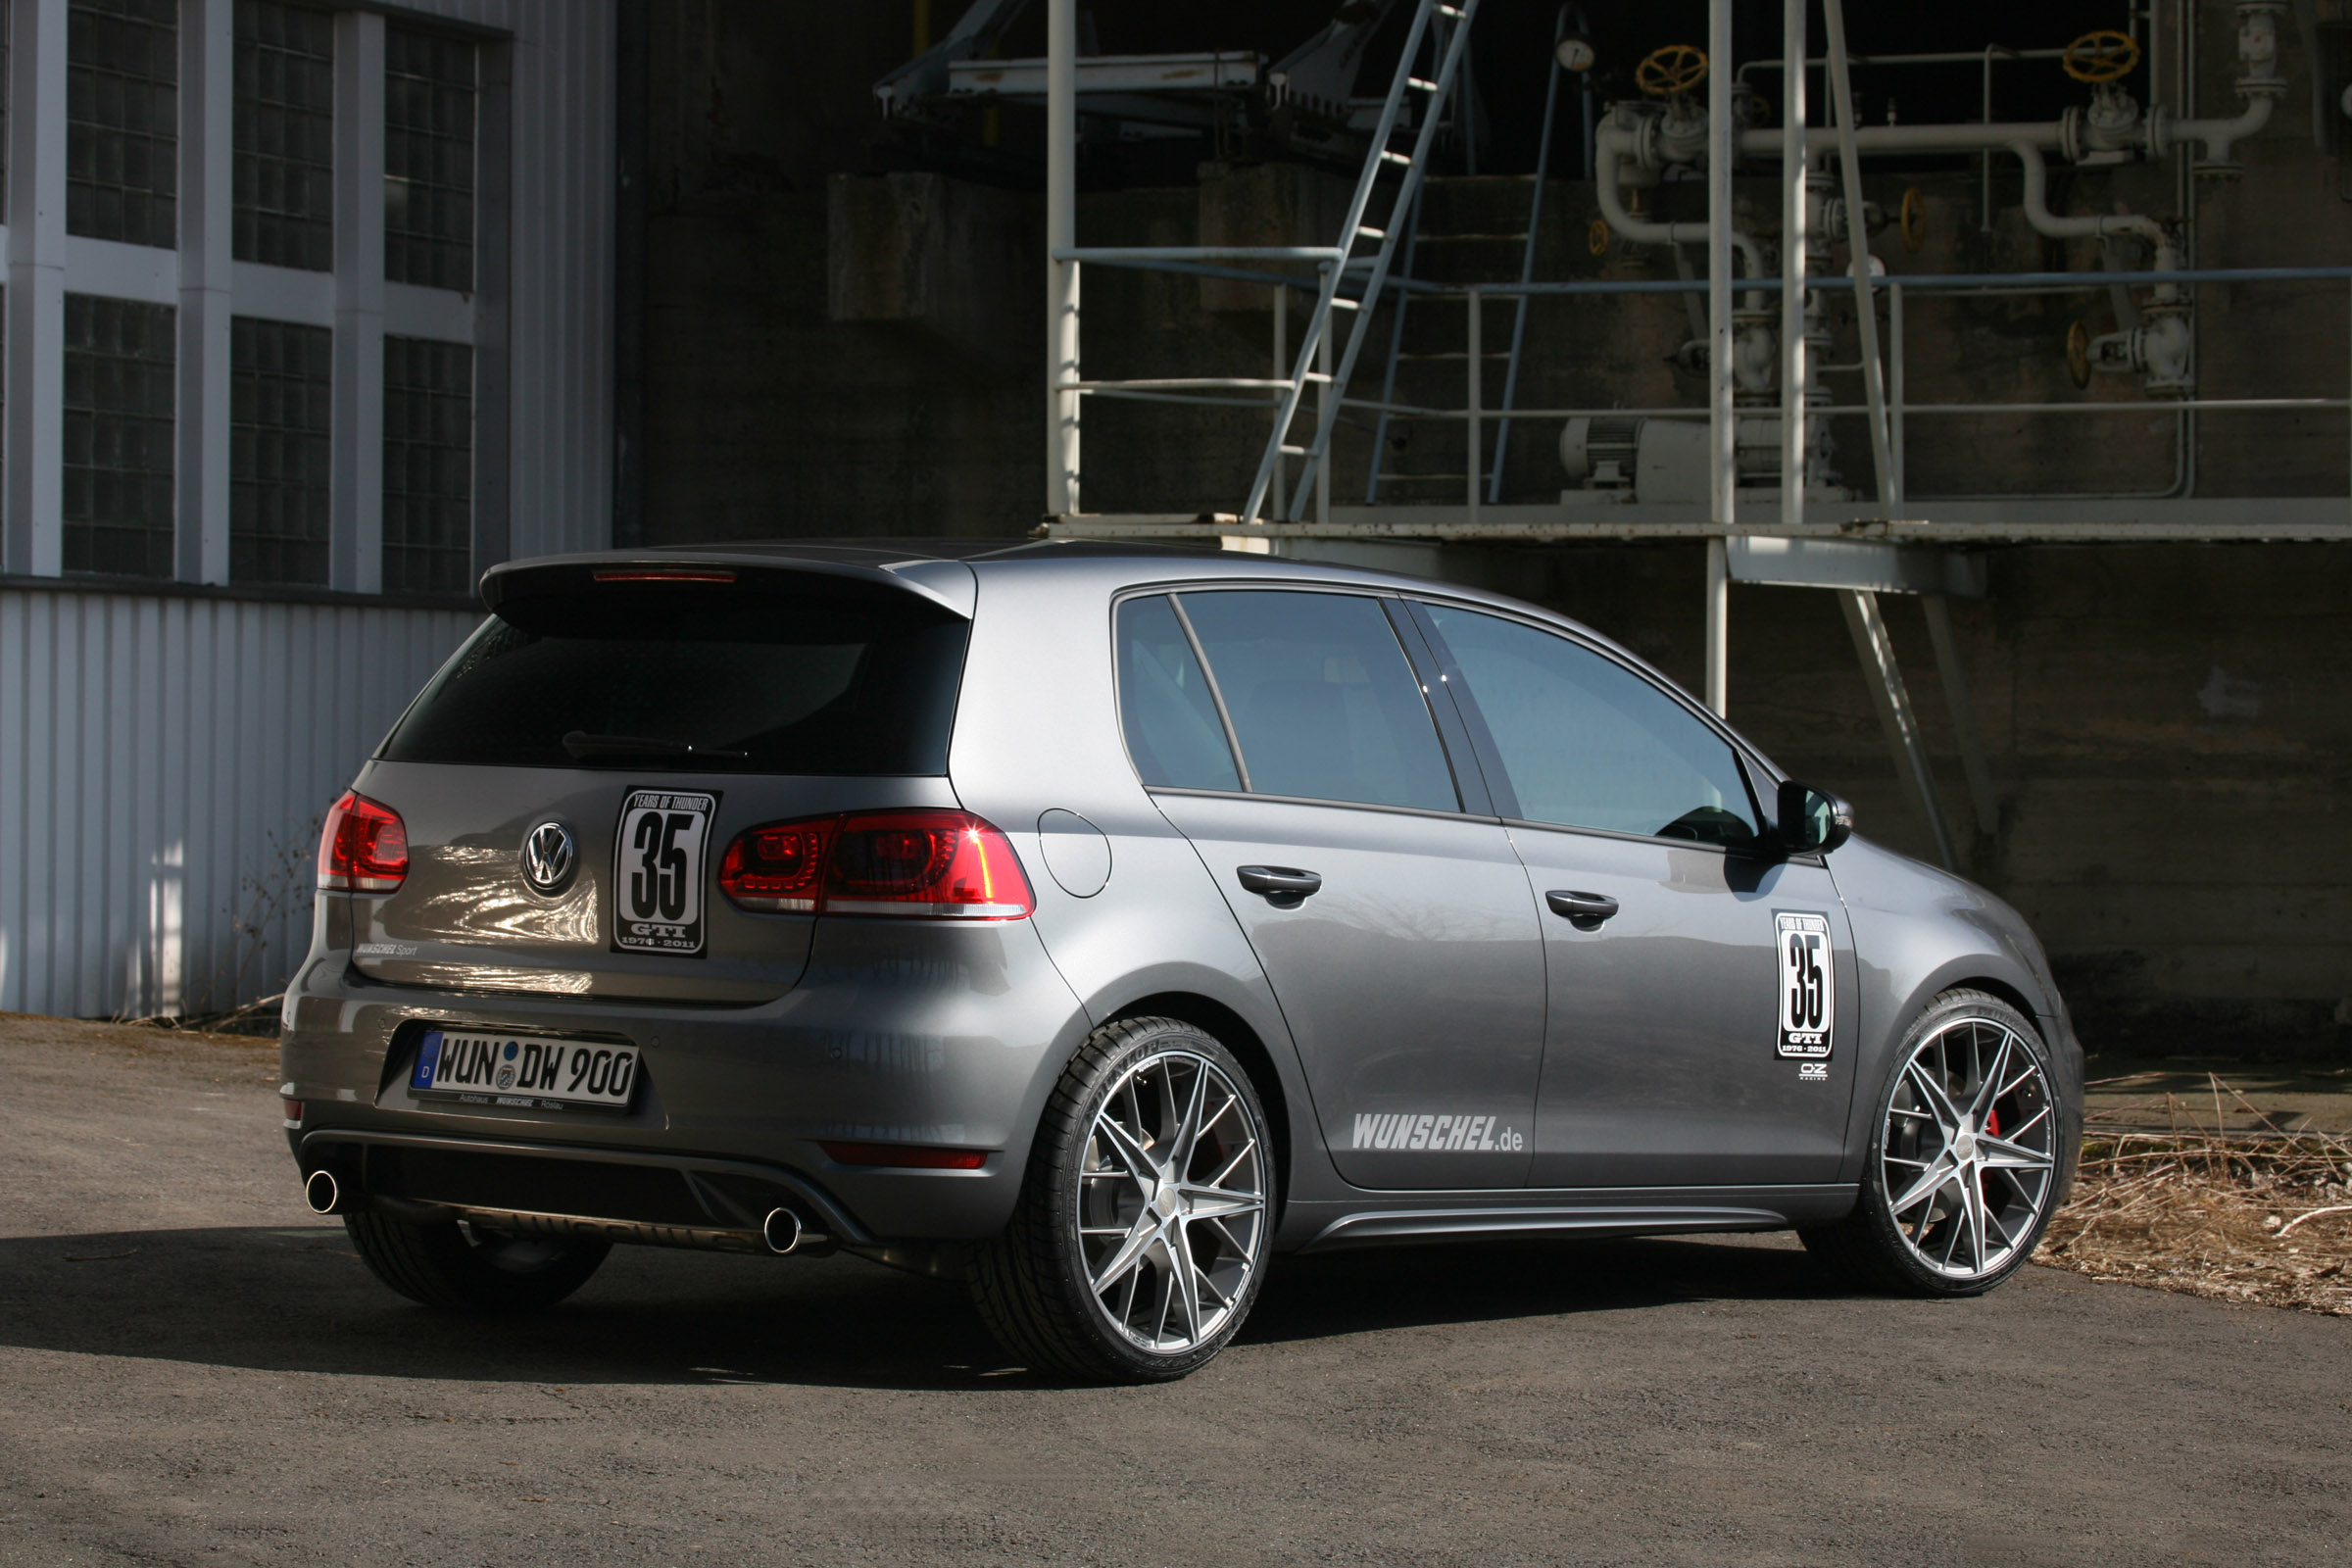 vw golf 6 gti by picture 51282. Black Bedroom Furniture Sets. Home Design Ideas